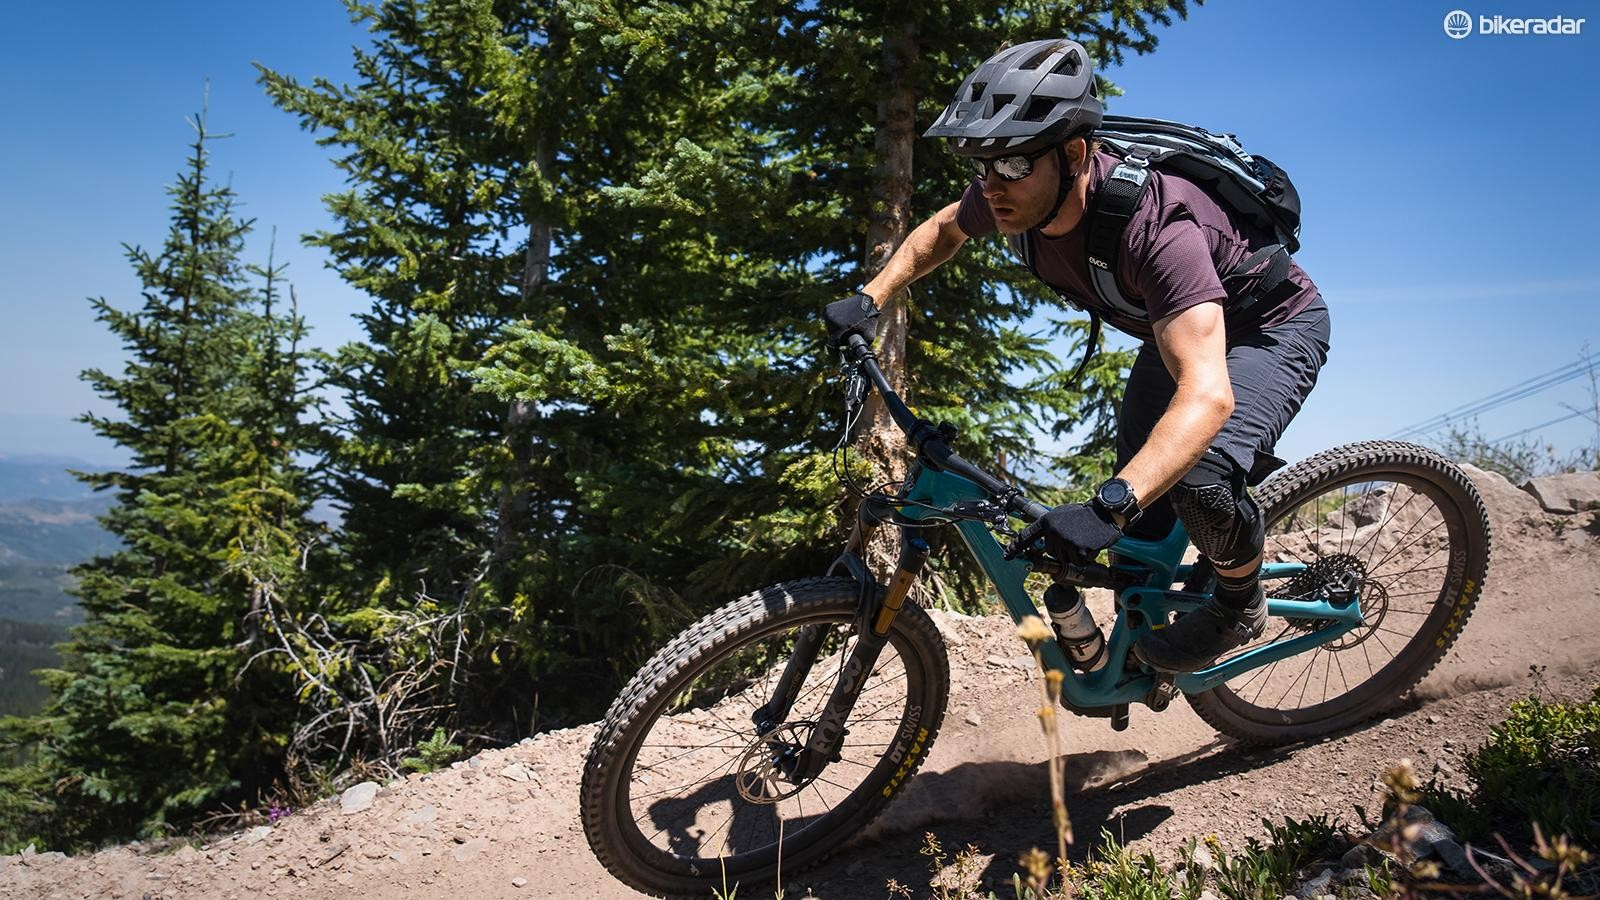 The SB150 comes into its own on high speed, technical terrain